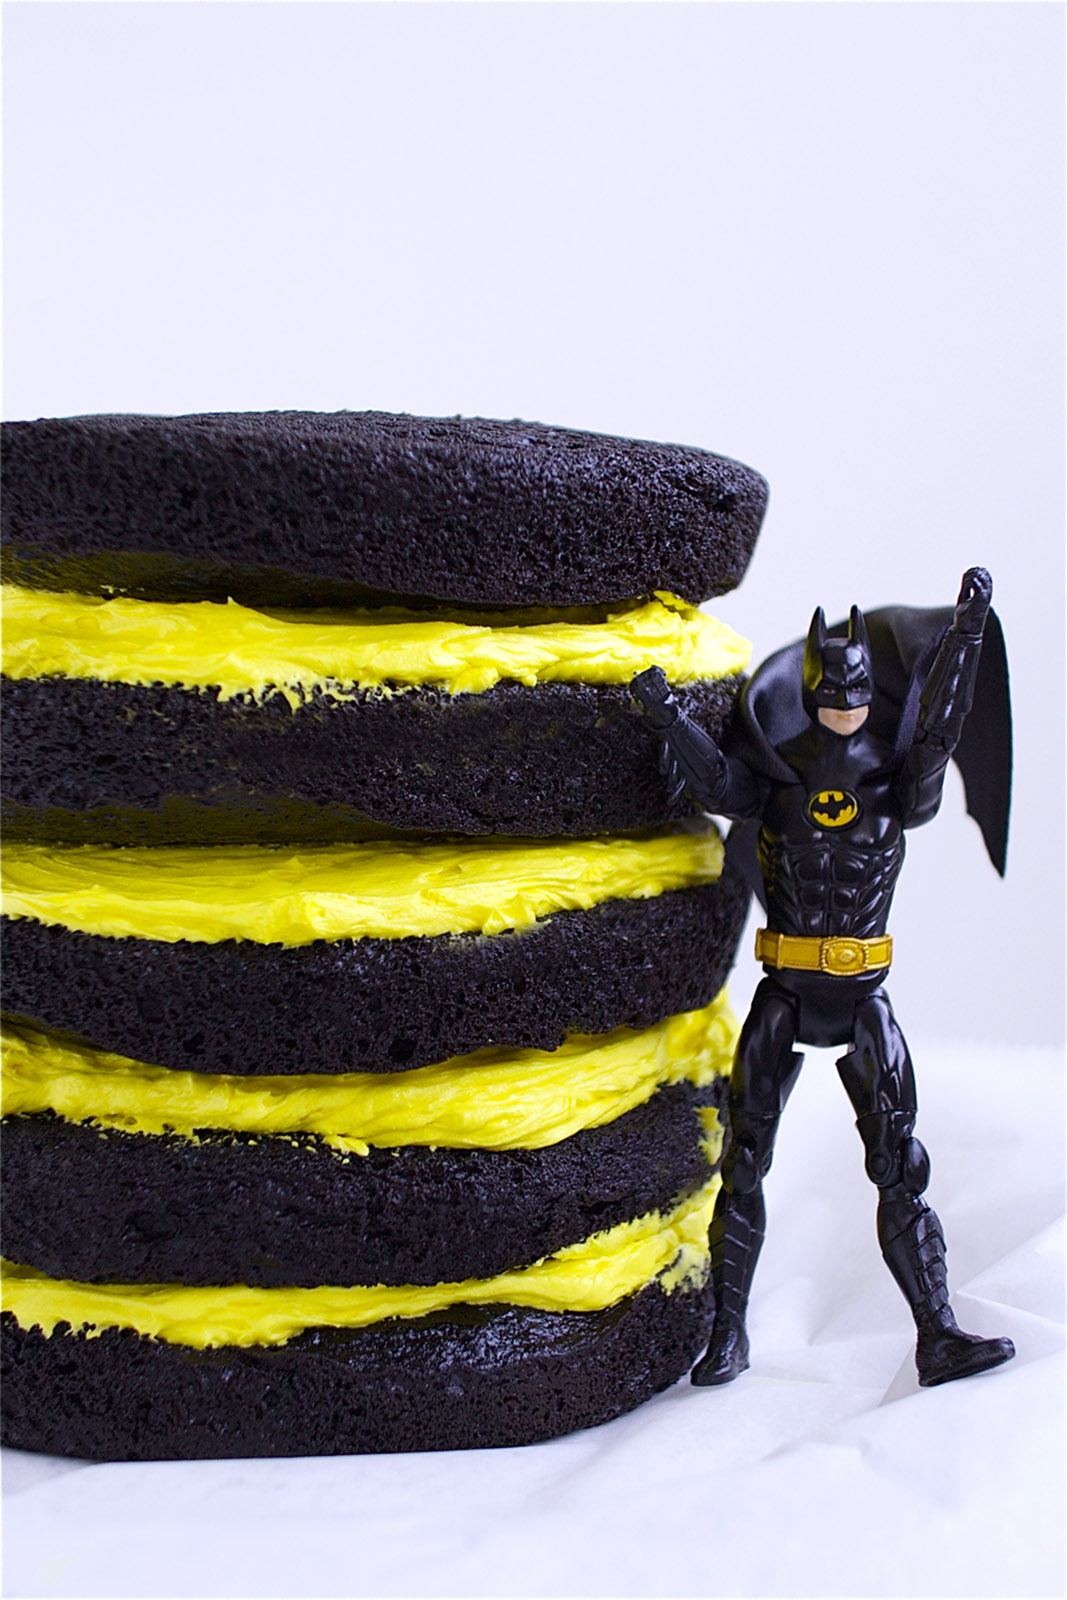 Batman Cake Naked